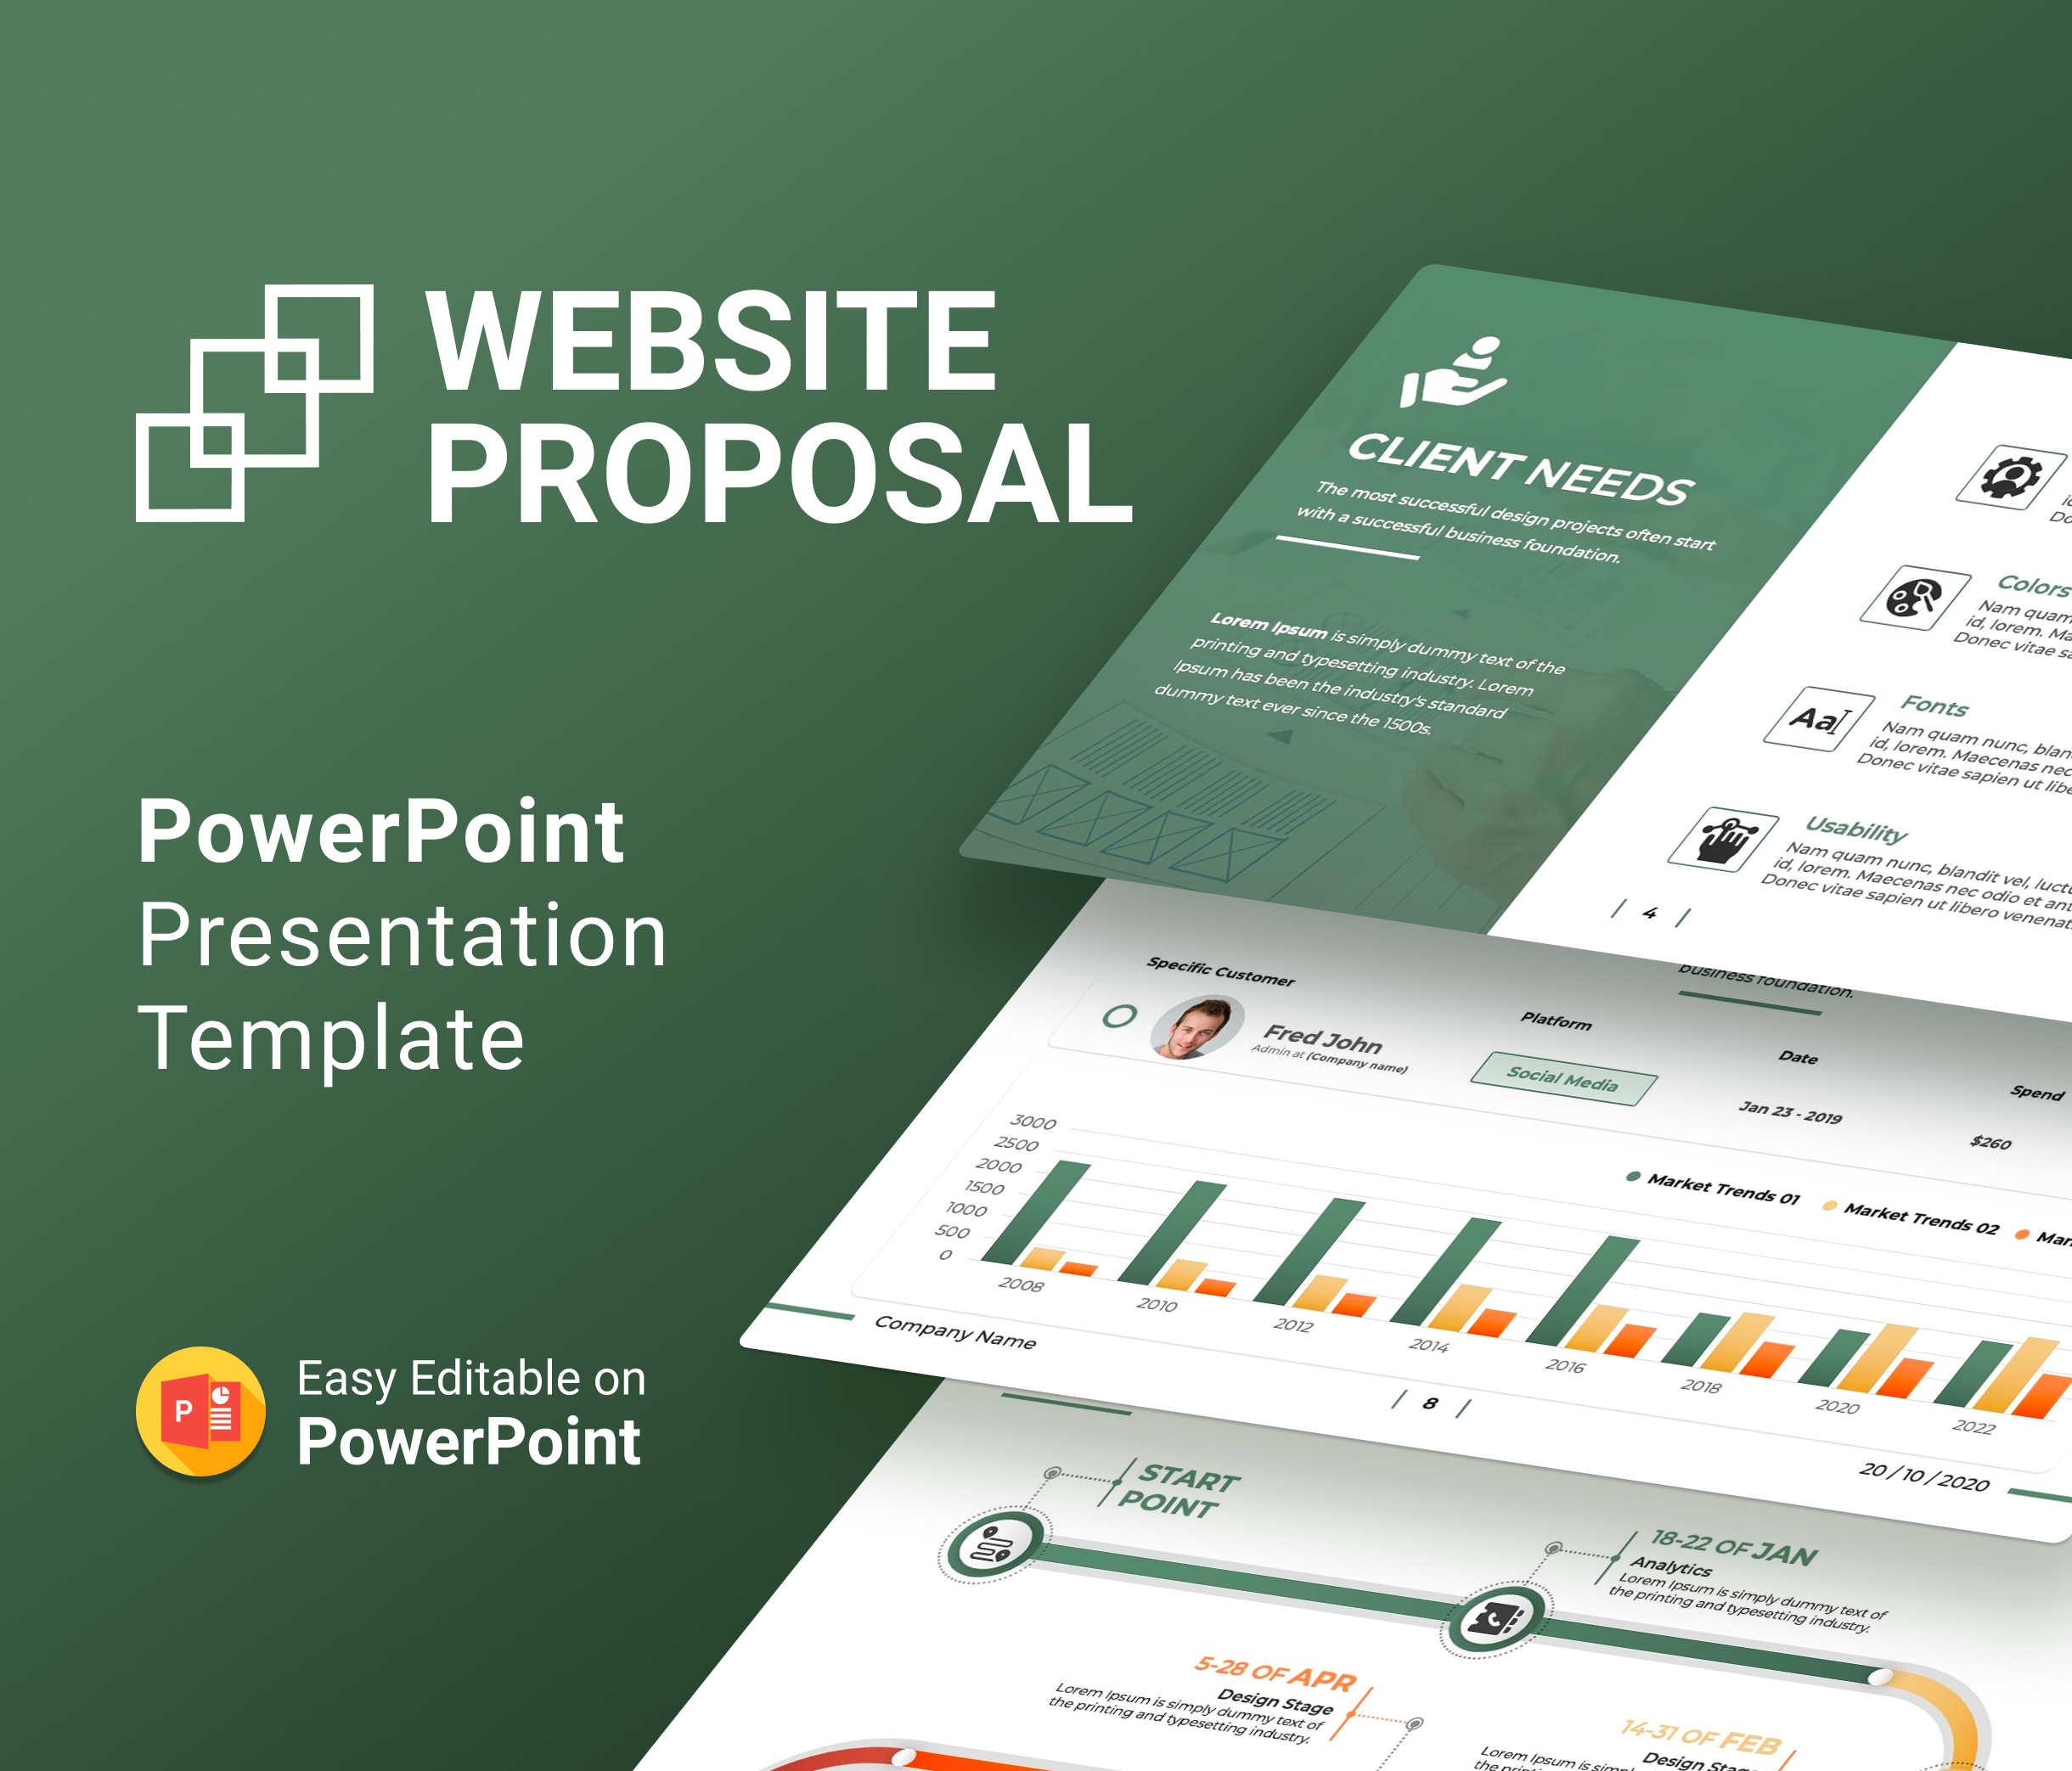 Website Proposal PowerPoint Presentation Template